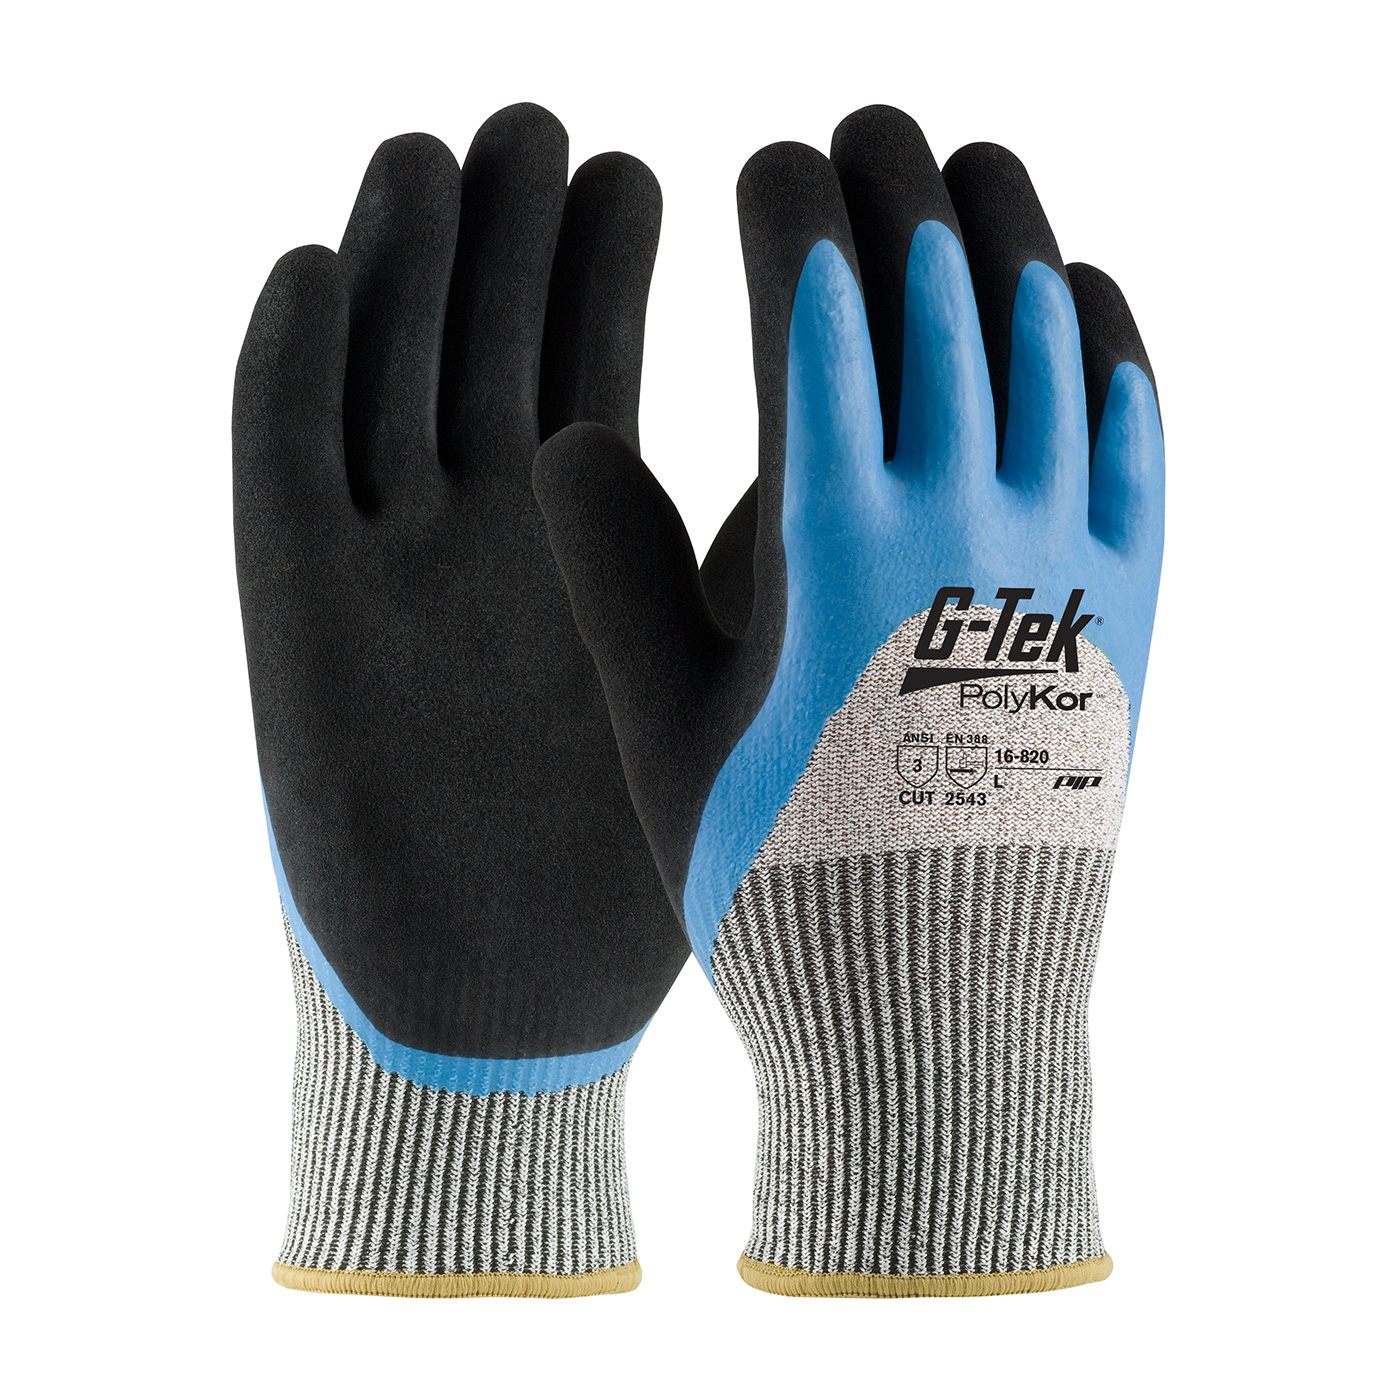 PIP 16-820/L G-Tek PolyKor Seamless Knit PolyKor Blended Glove with Acrylic Lining and Double-Dipped Latex Coated MicroSurface Grip on Palm, Fingers & Knuckles - Large PID-16 820 L